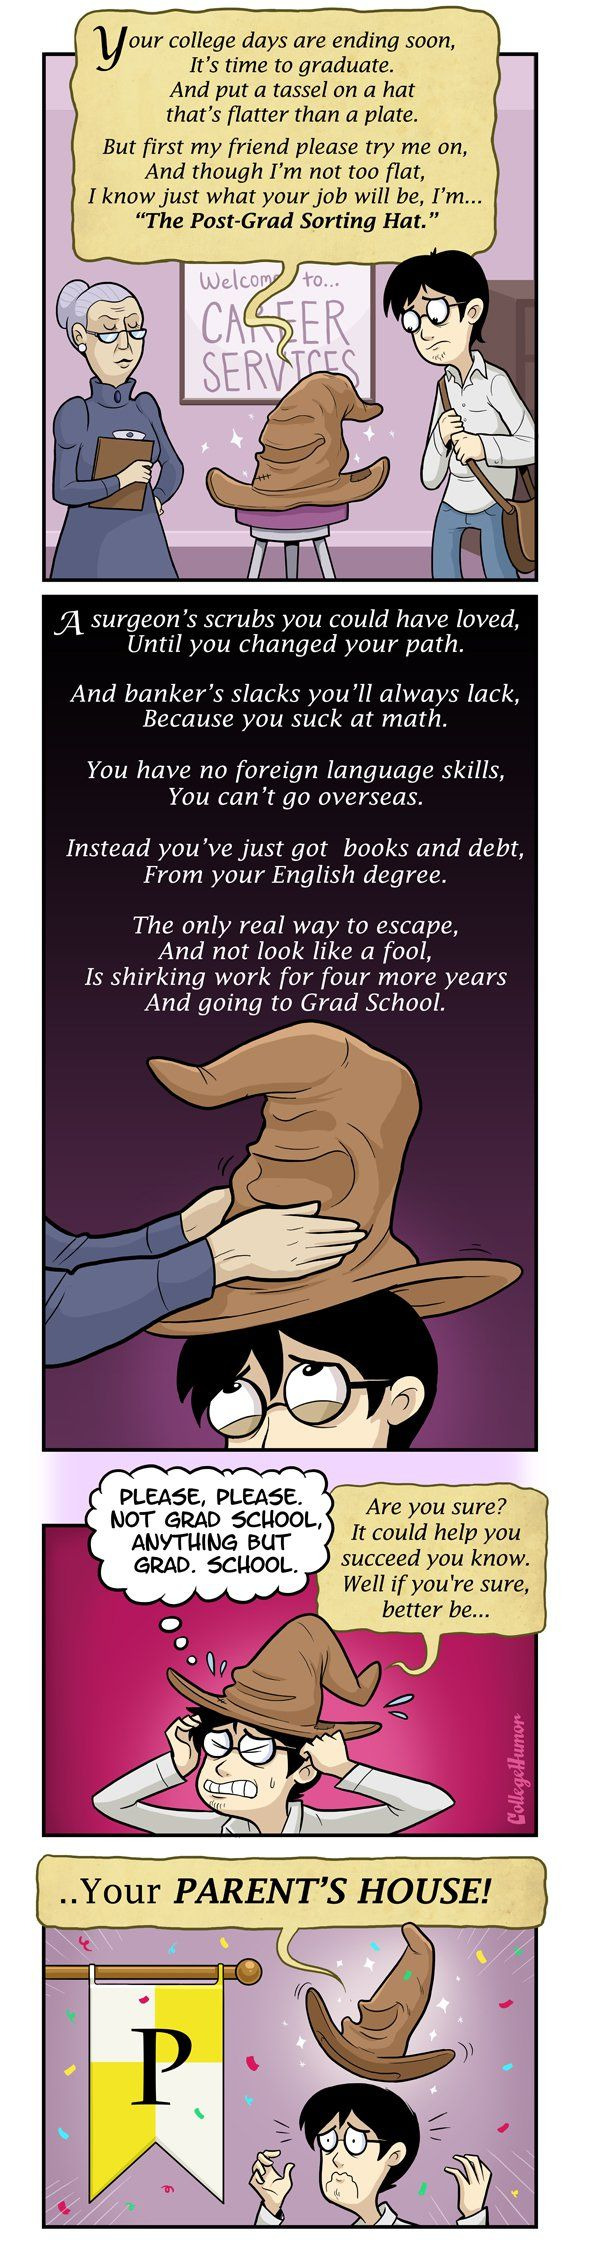 """""""The Post-Grad Sorting Hat"""" by Caldwell Tanner and Susanna Wolff - CollegeHumor Article"""